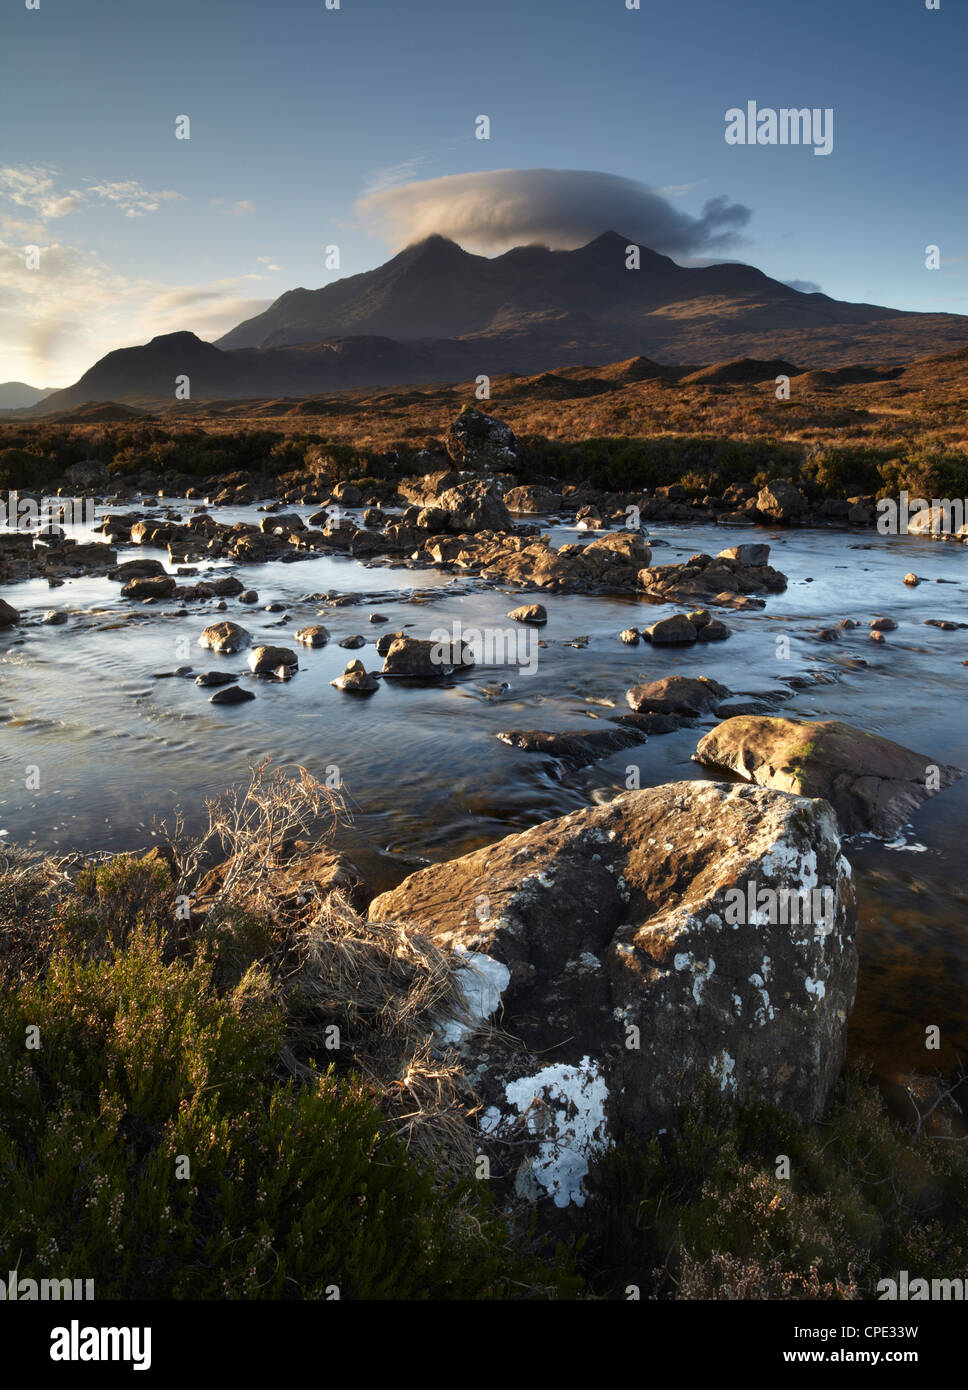 A winter morning view of the mountain Sgurr nan Gillean, Glen Sligachan, Isle of Skye, Inner Hebrides, Scotland, - Stock Image